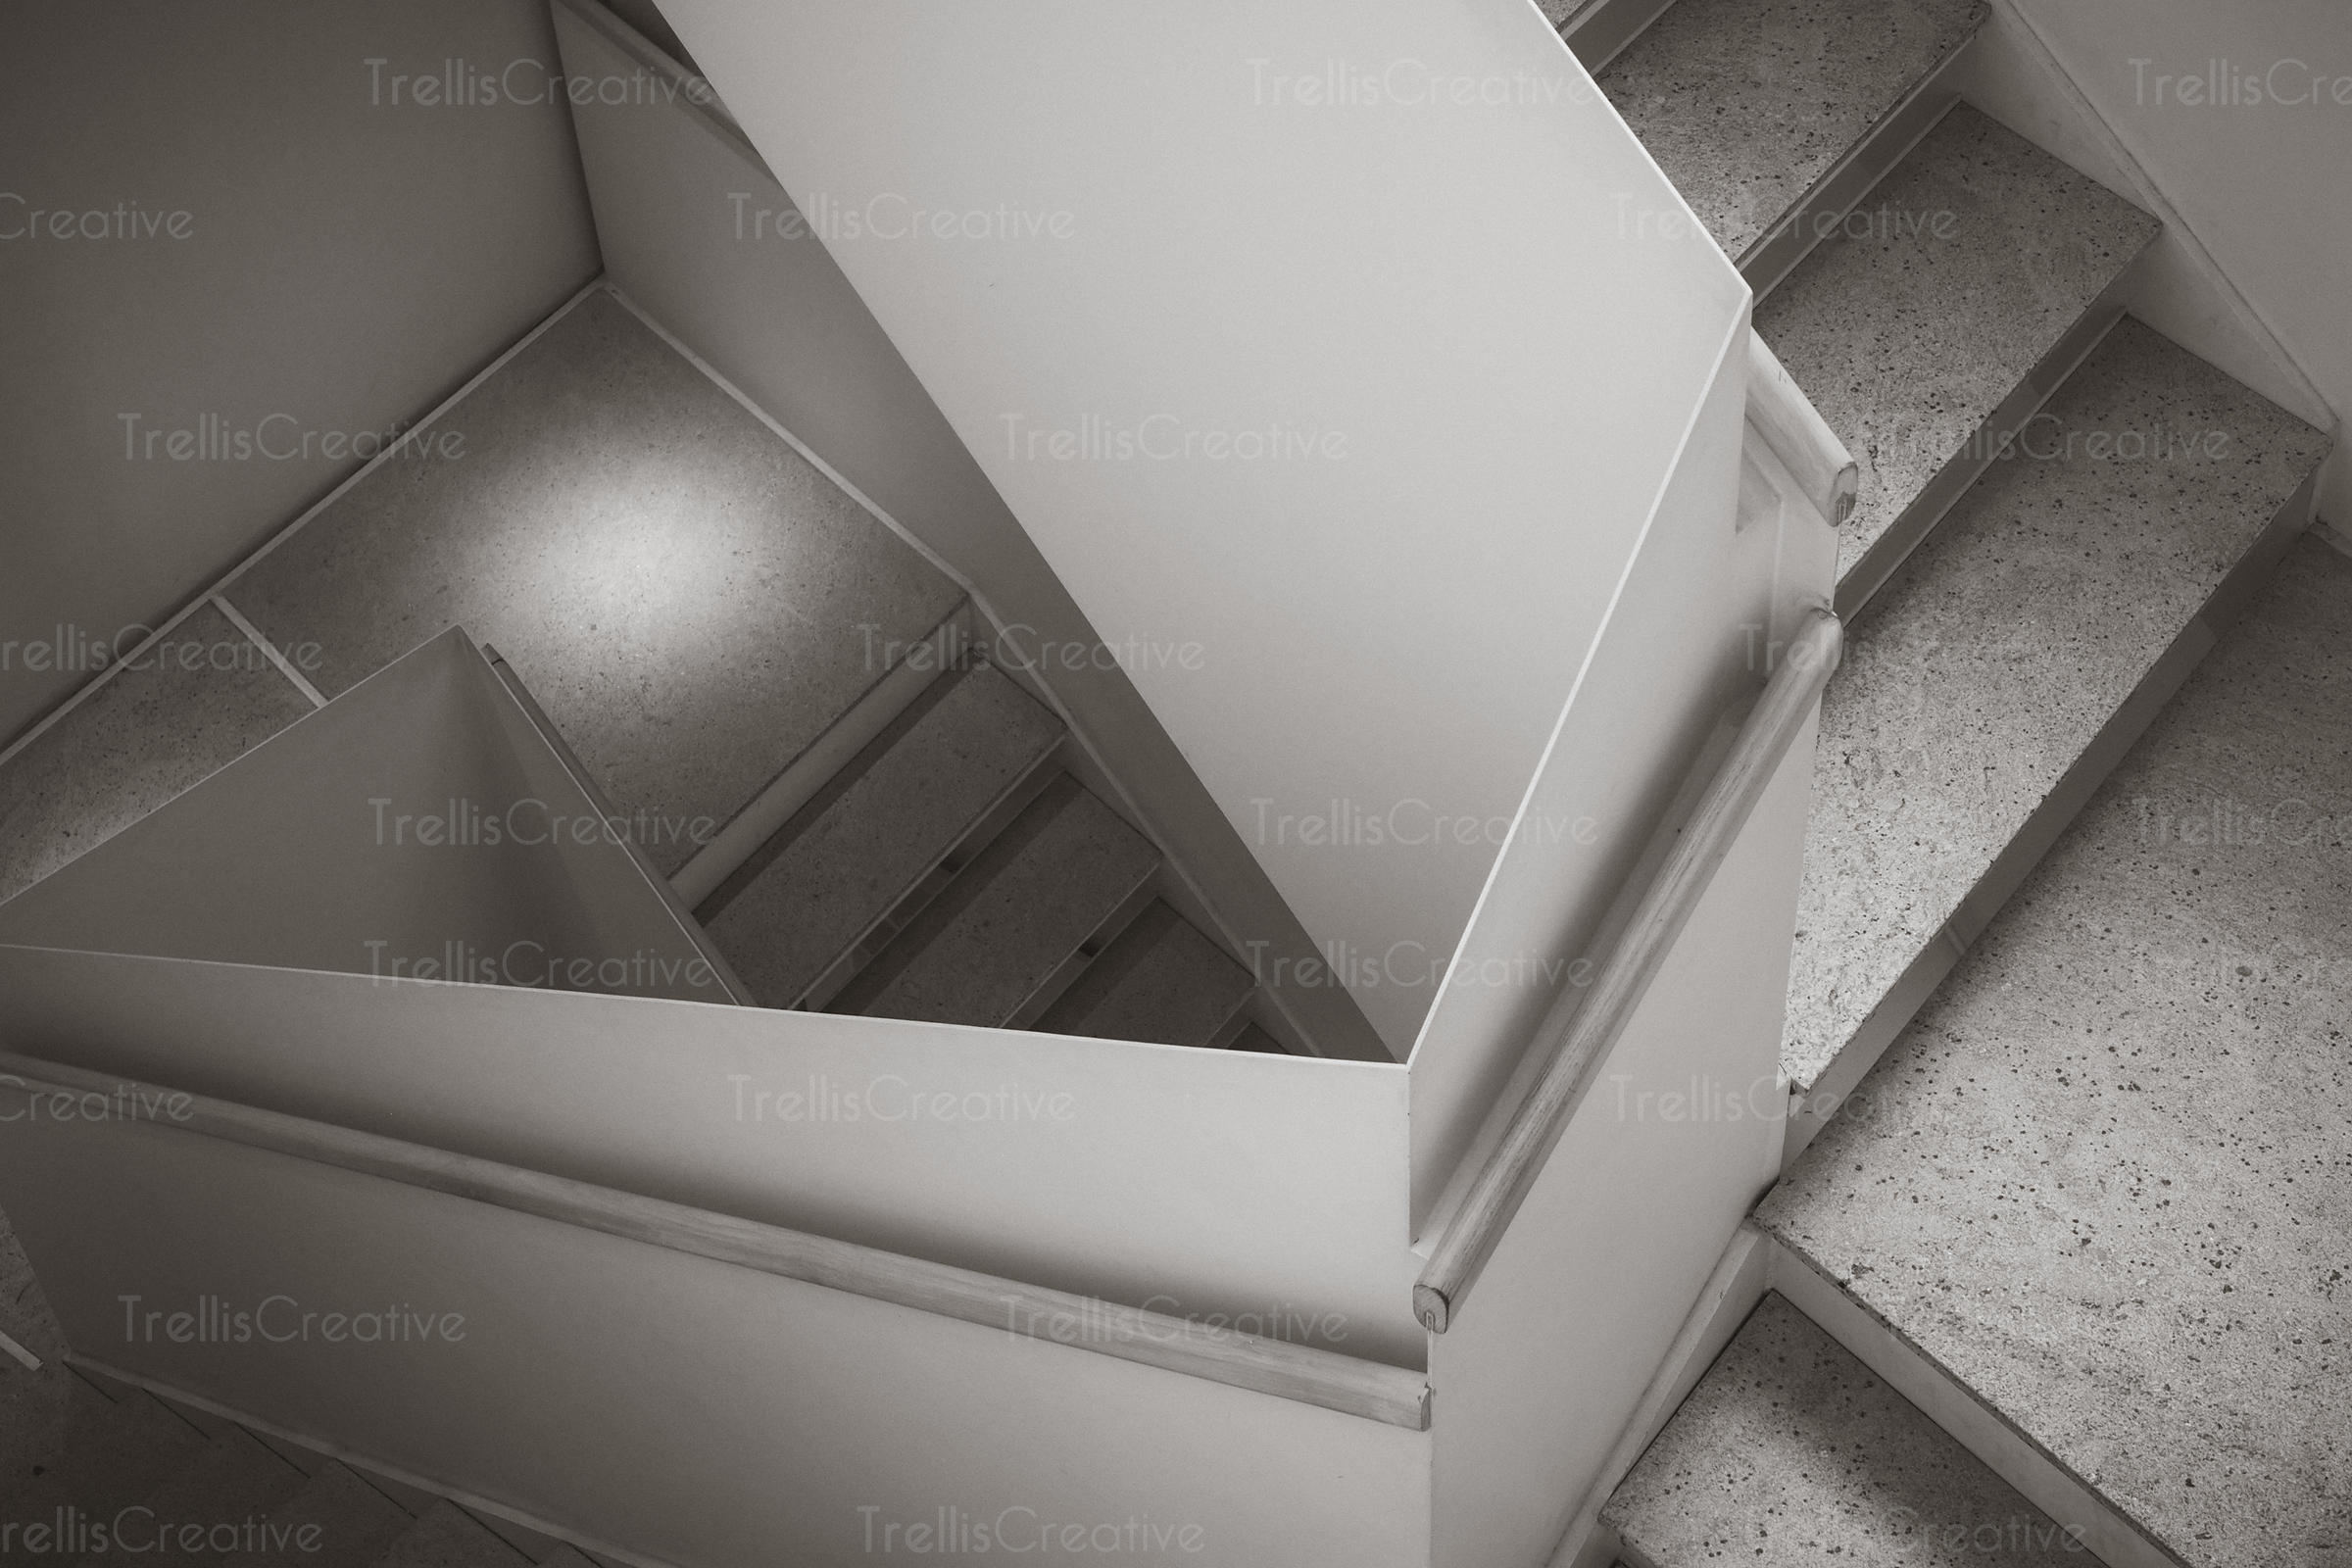 Aerial view of staircase in black and white